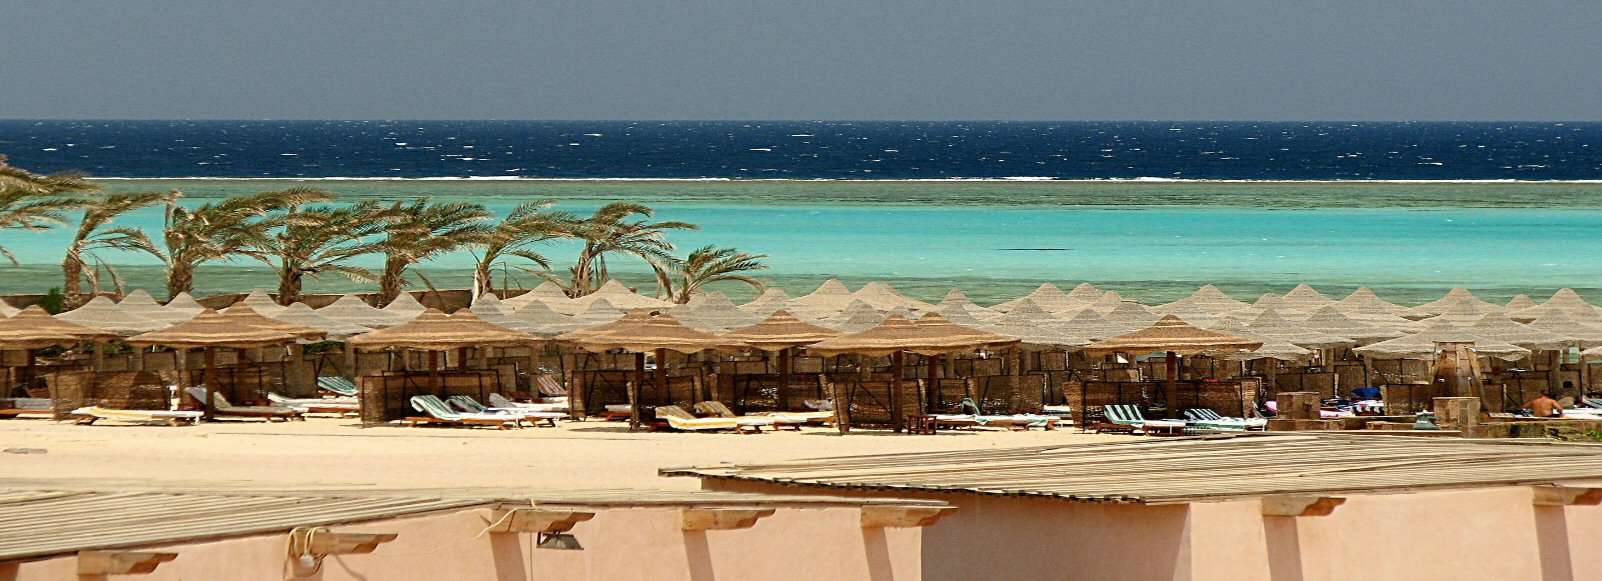 Hotel reservation in Marsa Alam Hotel offers in Marsa Alam